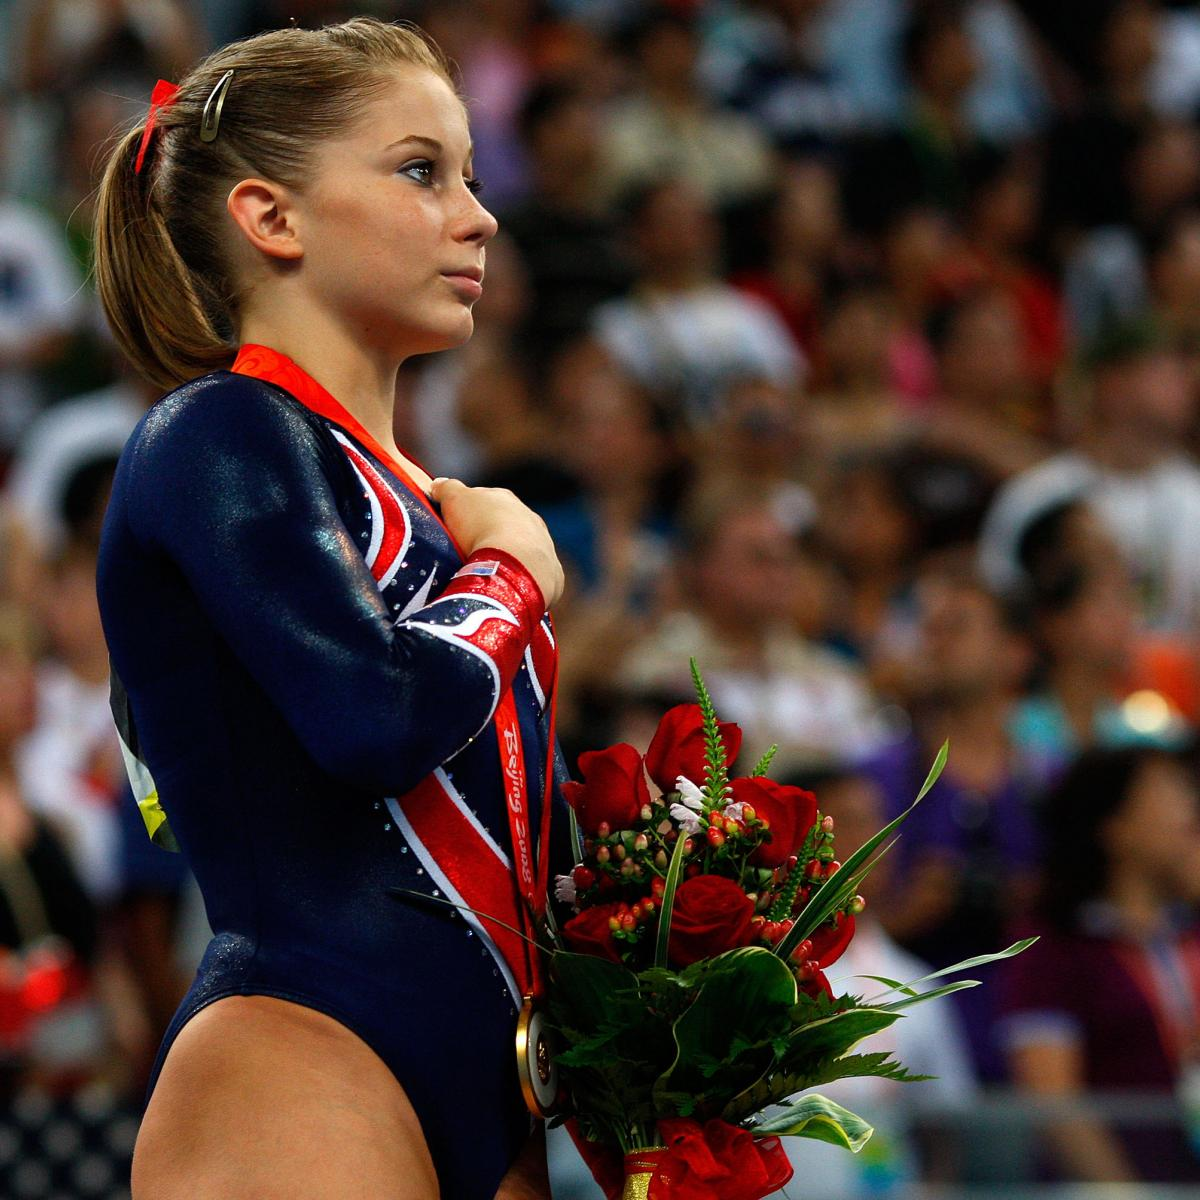 Gymnastics ban of Maggie Haney shows verbal abuse wont be